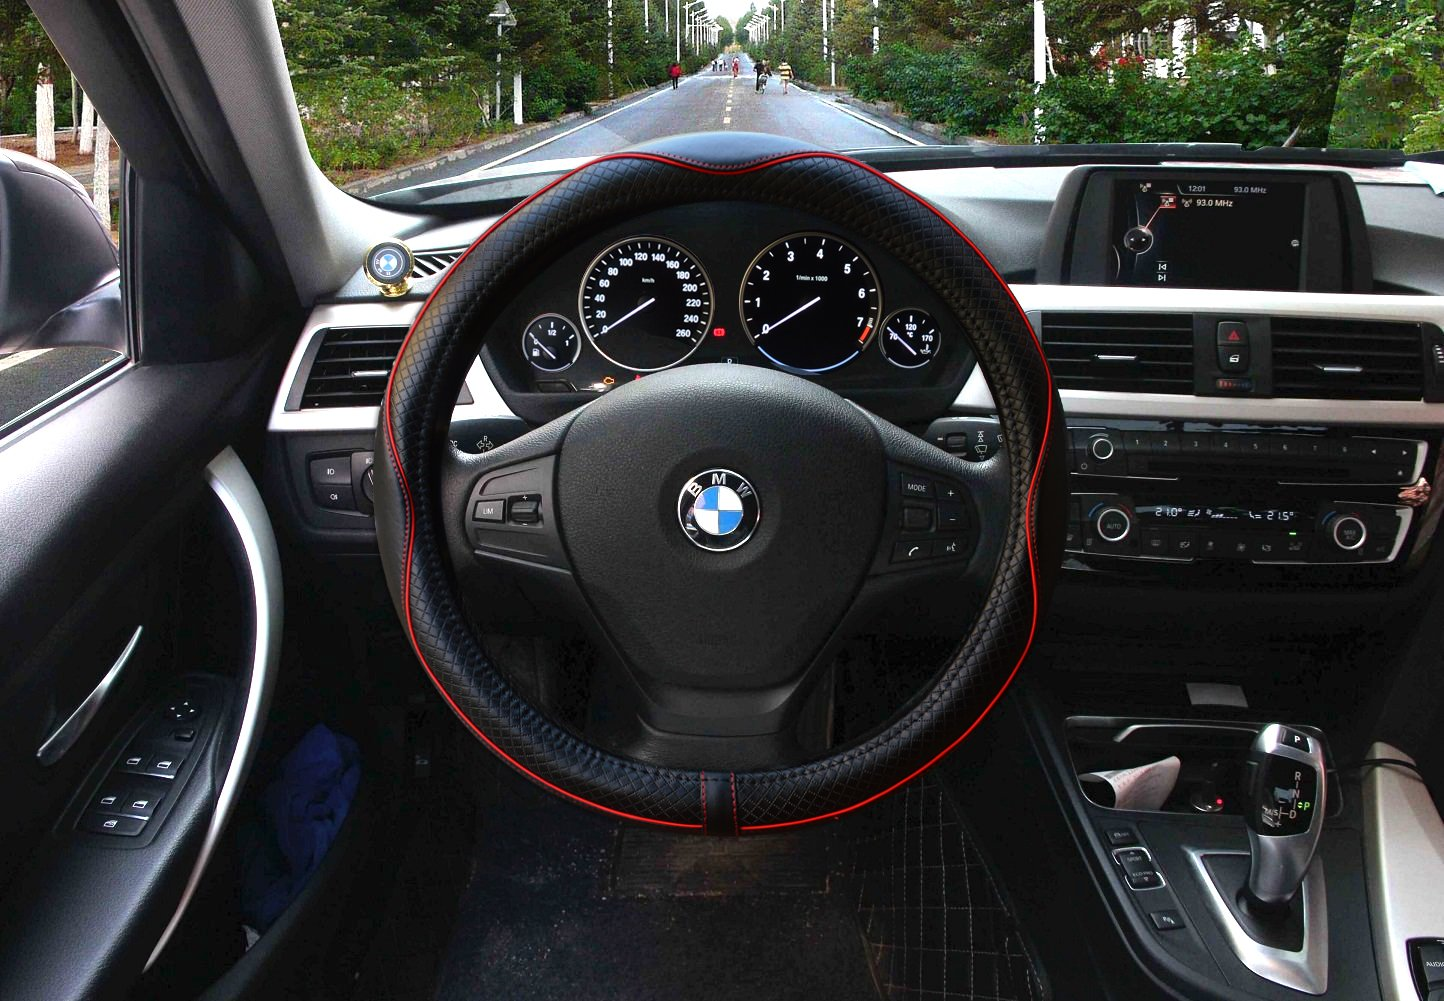 Black with Blue Lines Valleycomfy Steering Wheel Covers Universal 15 inch Genuine Leather Anti Slip /& Odor Free Breathable